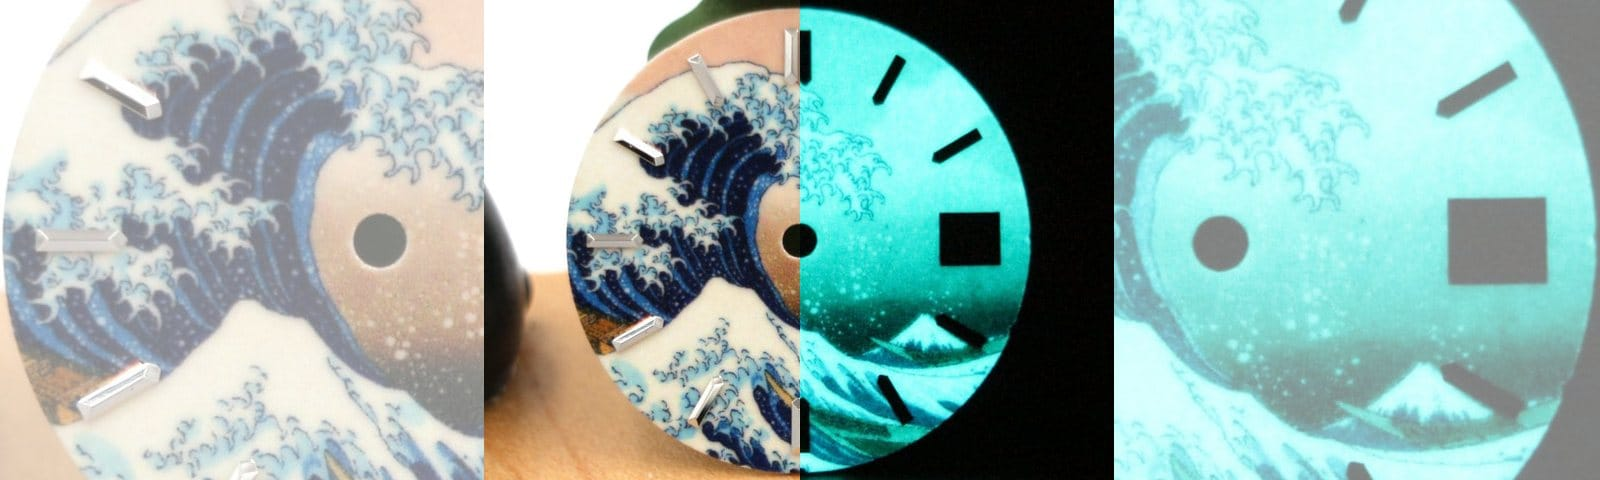 Return of The Great Wave: A New Masterpiece